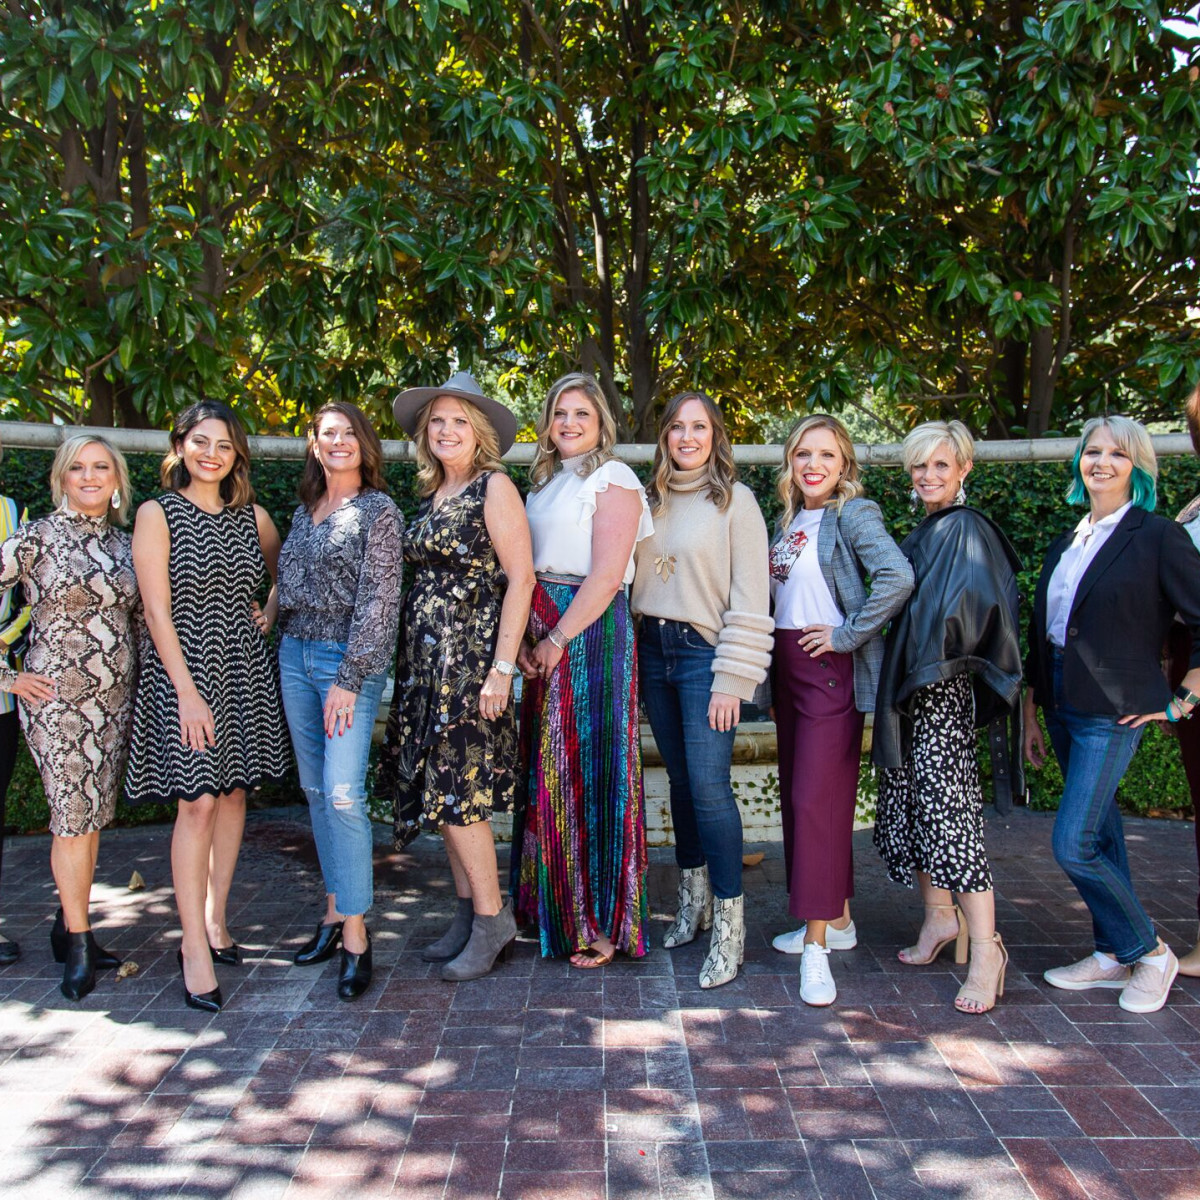 Ann Eisemann, Claudia Kuntz, Kezhal Dashti, Stacey Peterson, Linda Bezner, Lauren Shecht, Jessica Baxter, Holly Tomlin, Pamela Waters, Julie Bass, Natasha Reed